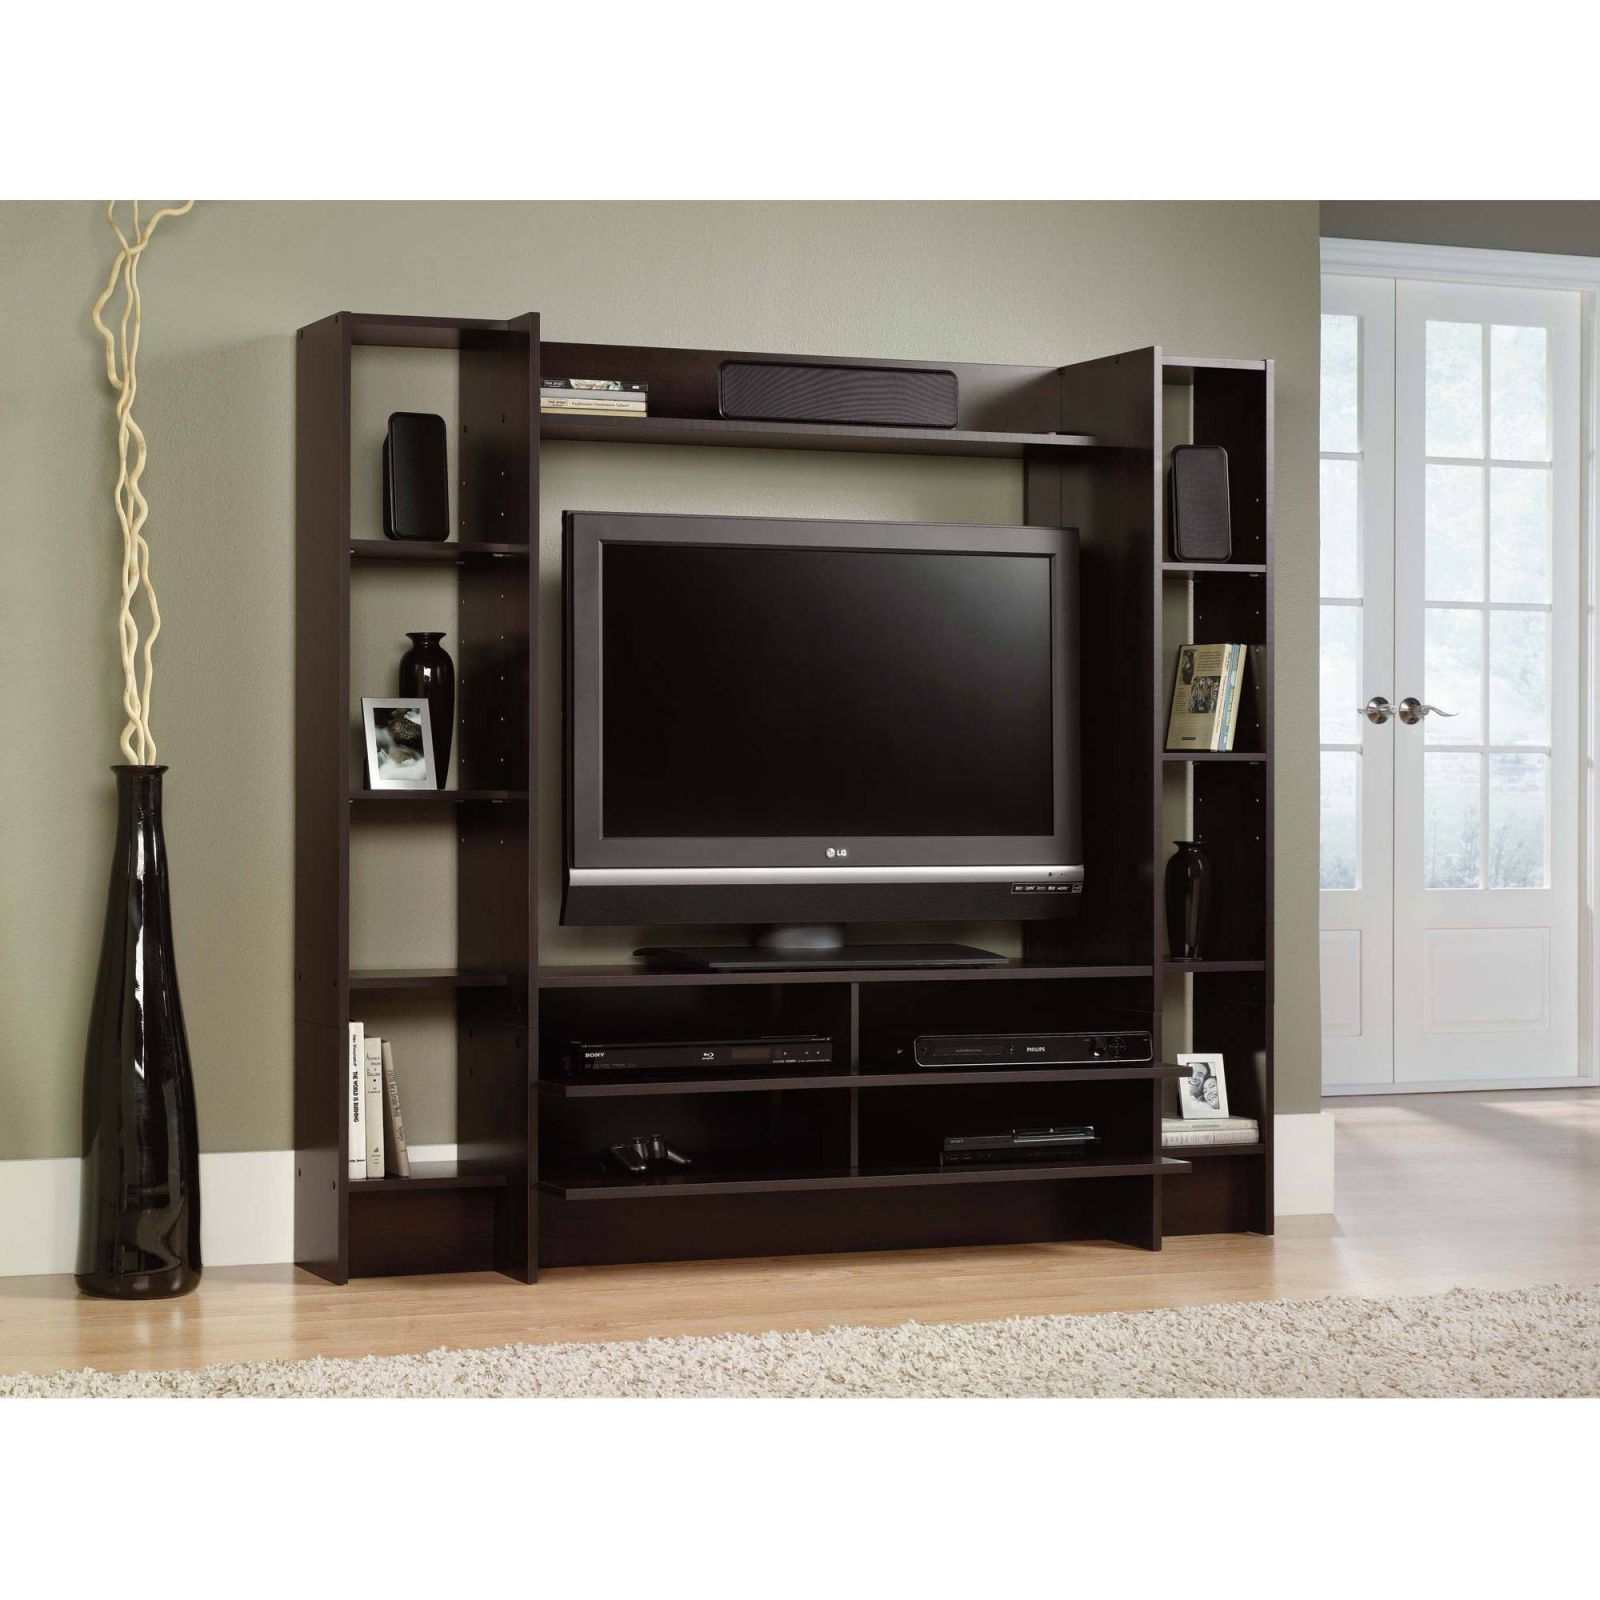 Details About Home Entertainment Center Wood Storage Cabinet Tv Stand Console Media Furniture throughout Furniture Tv Stands